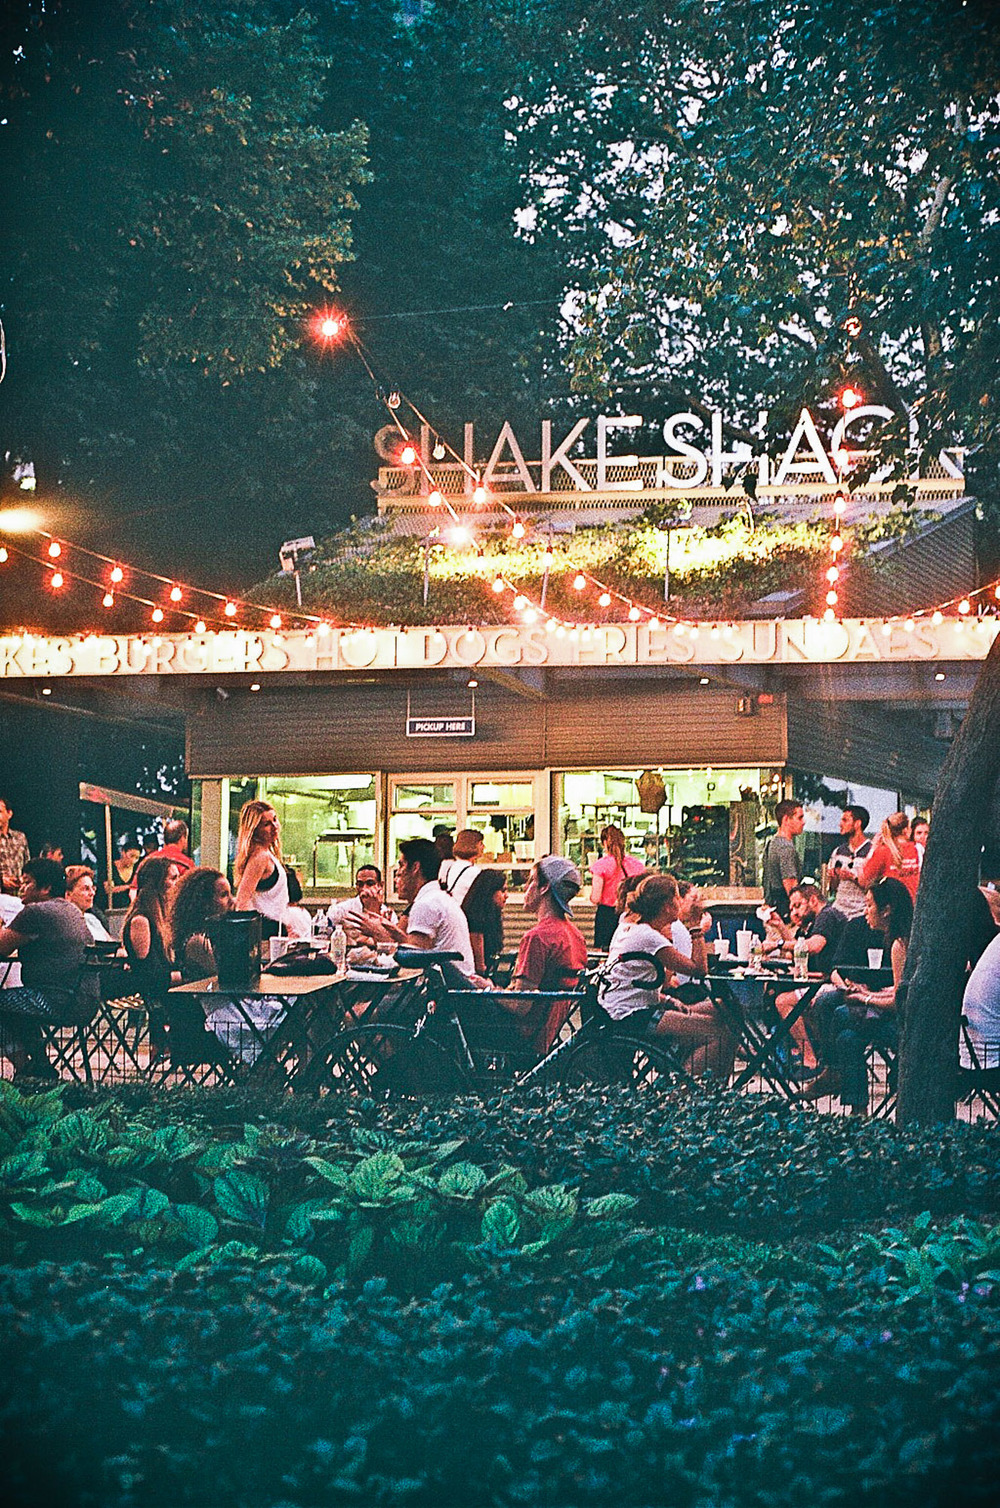 They took me to my 1st Shake Shack.